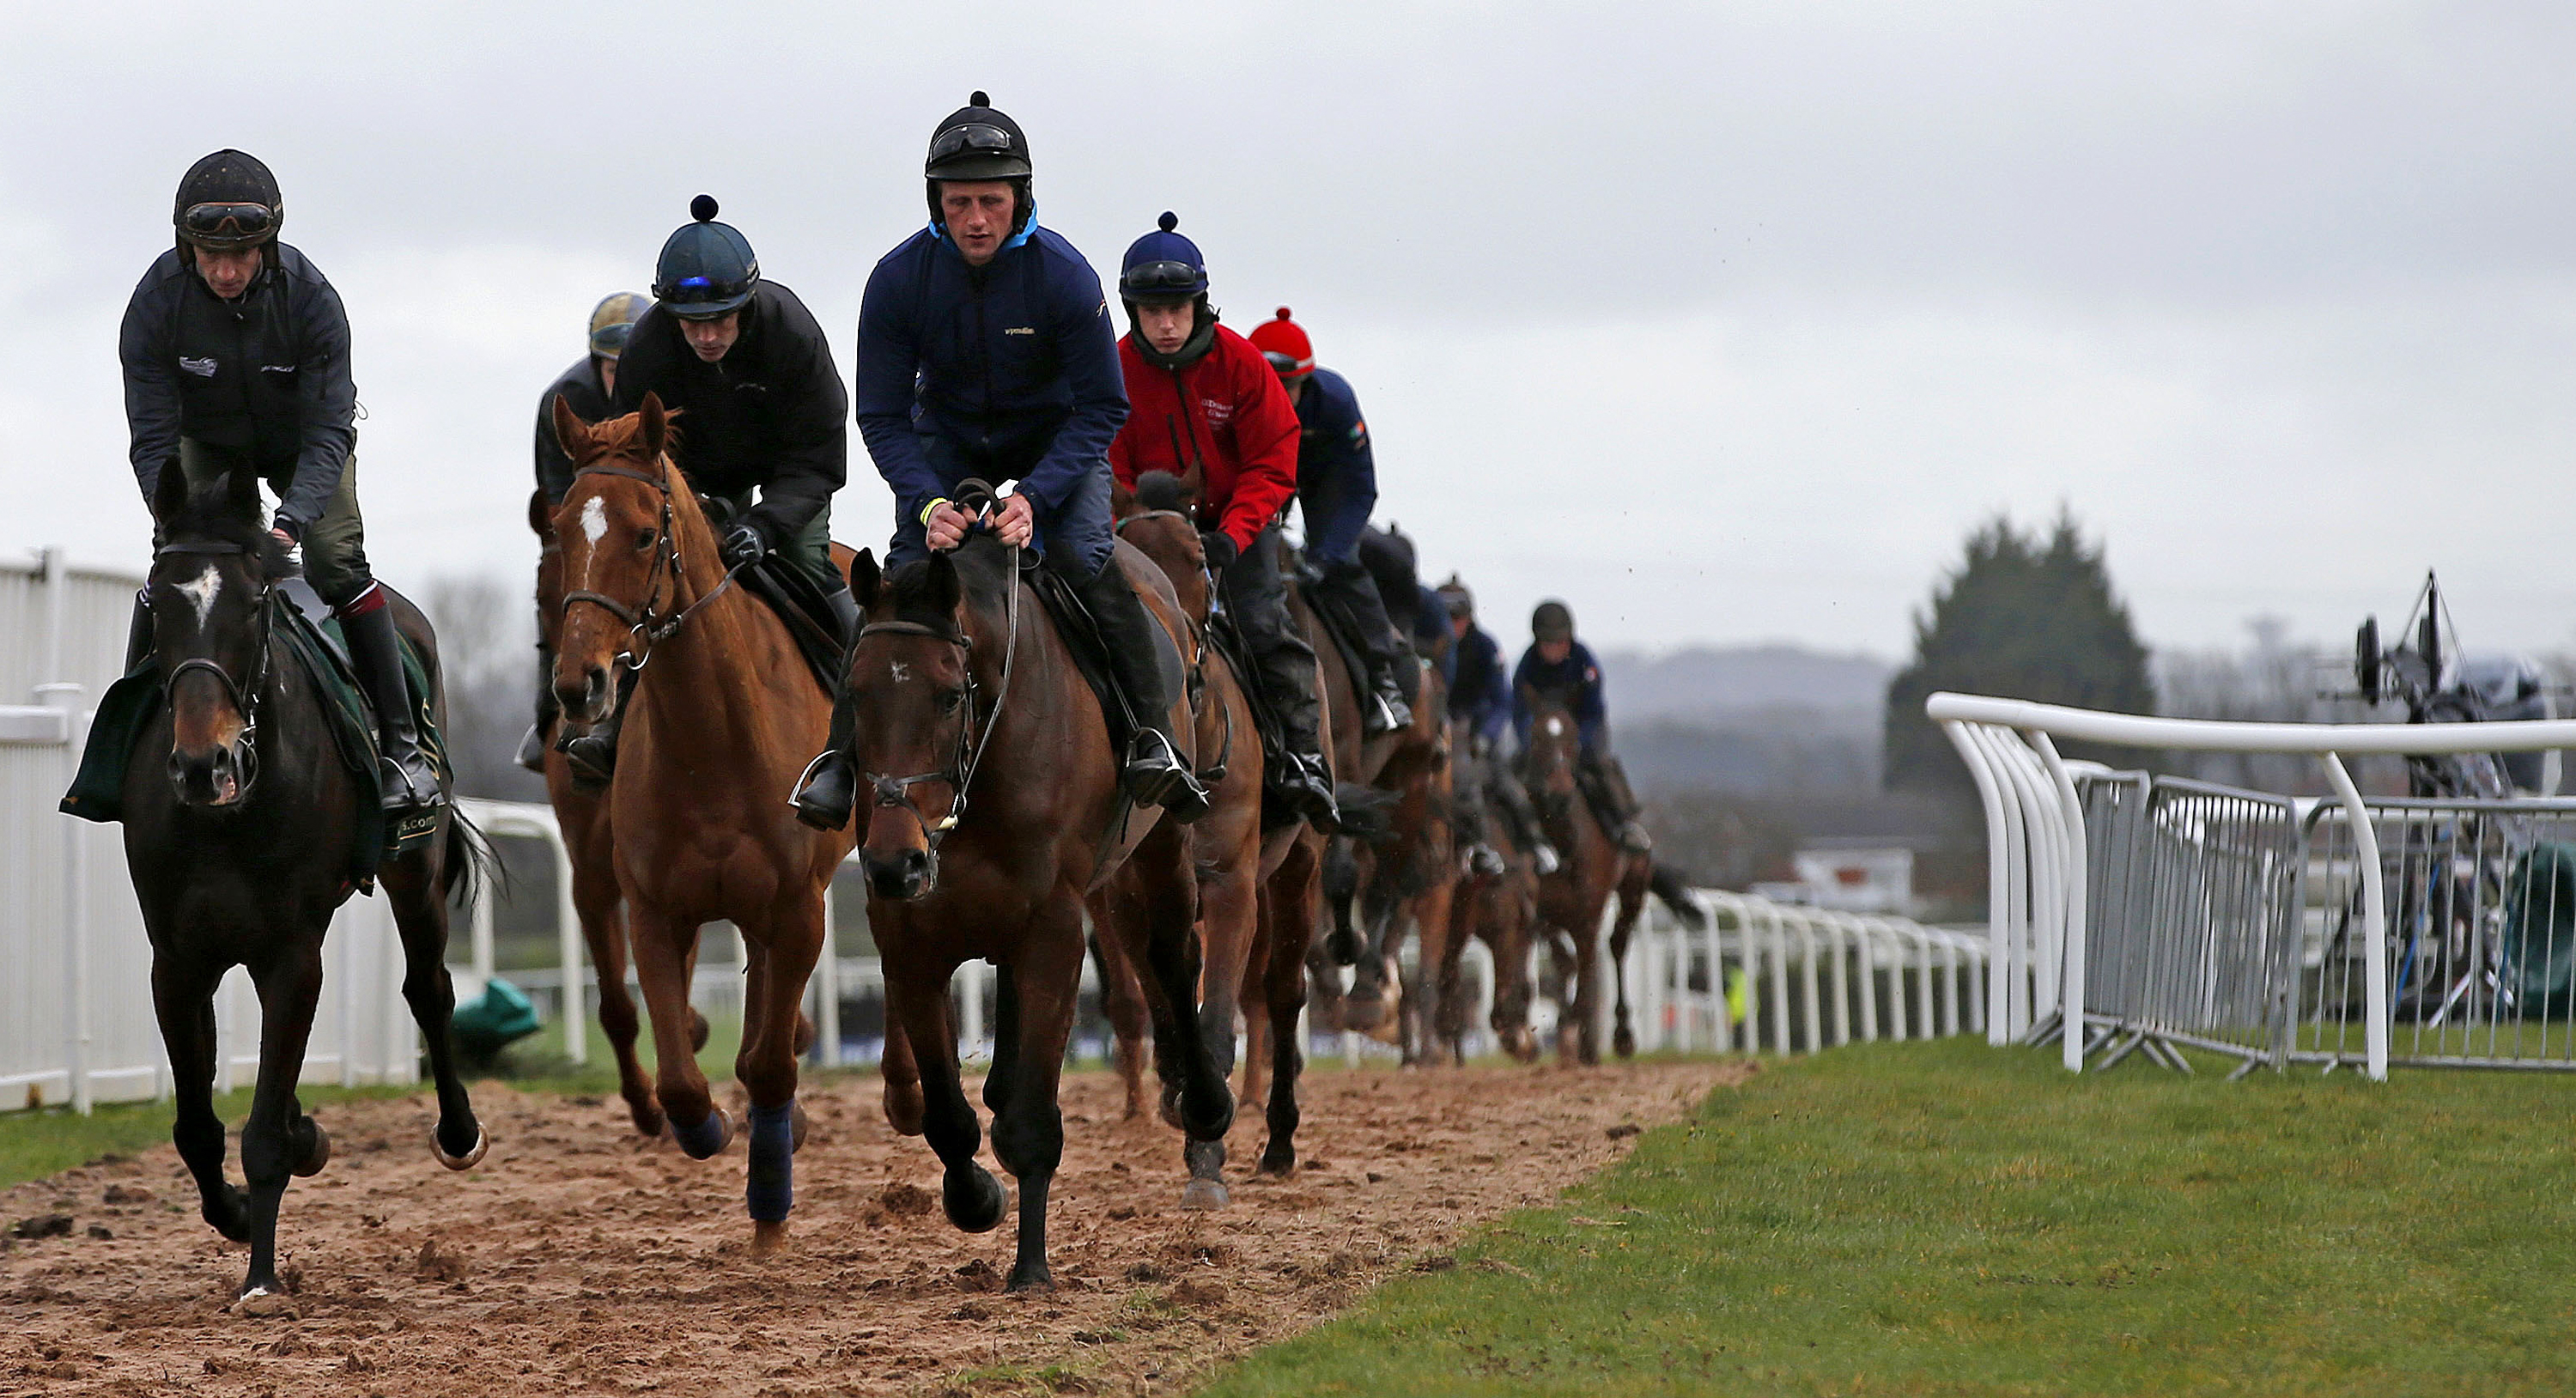 Horses on the gallops early morning on a cold and overcast opening day prior to the official start of the Grand National Festival at Aintree Racecourse, Liverpool, England, Thursday April 7, 2016.  The Festival is a premier fixture for horse racing, with